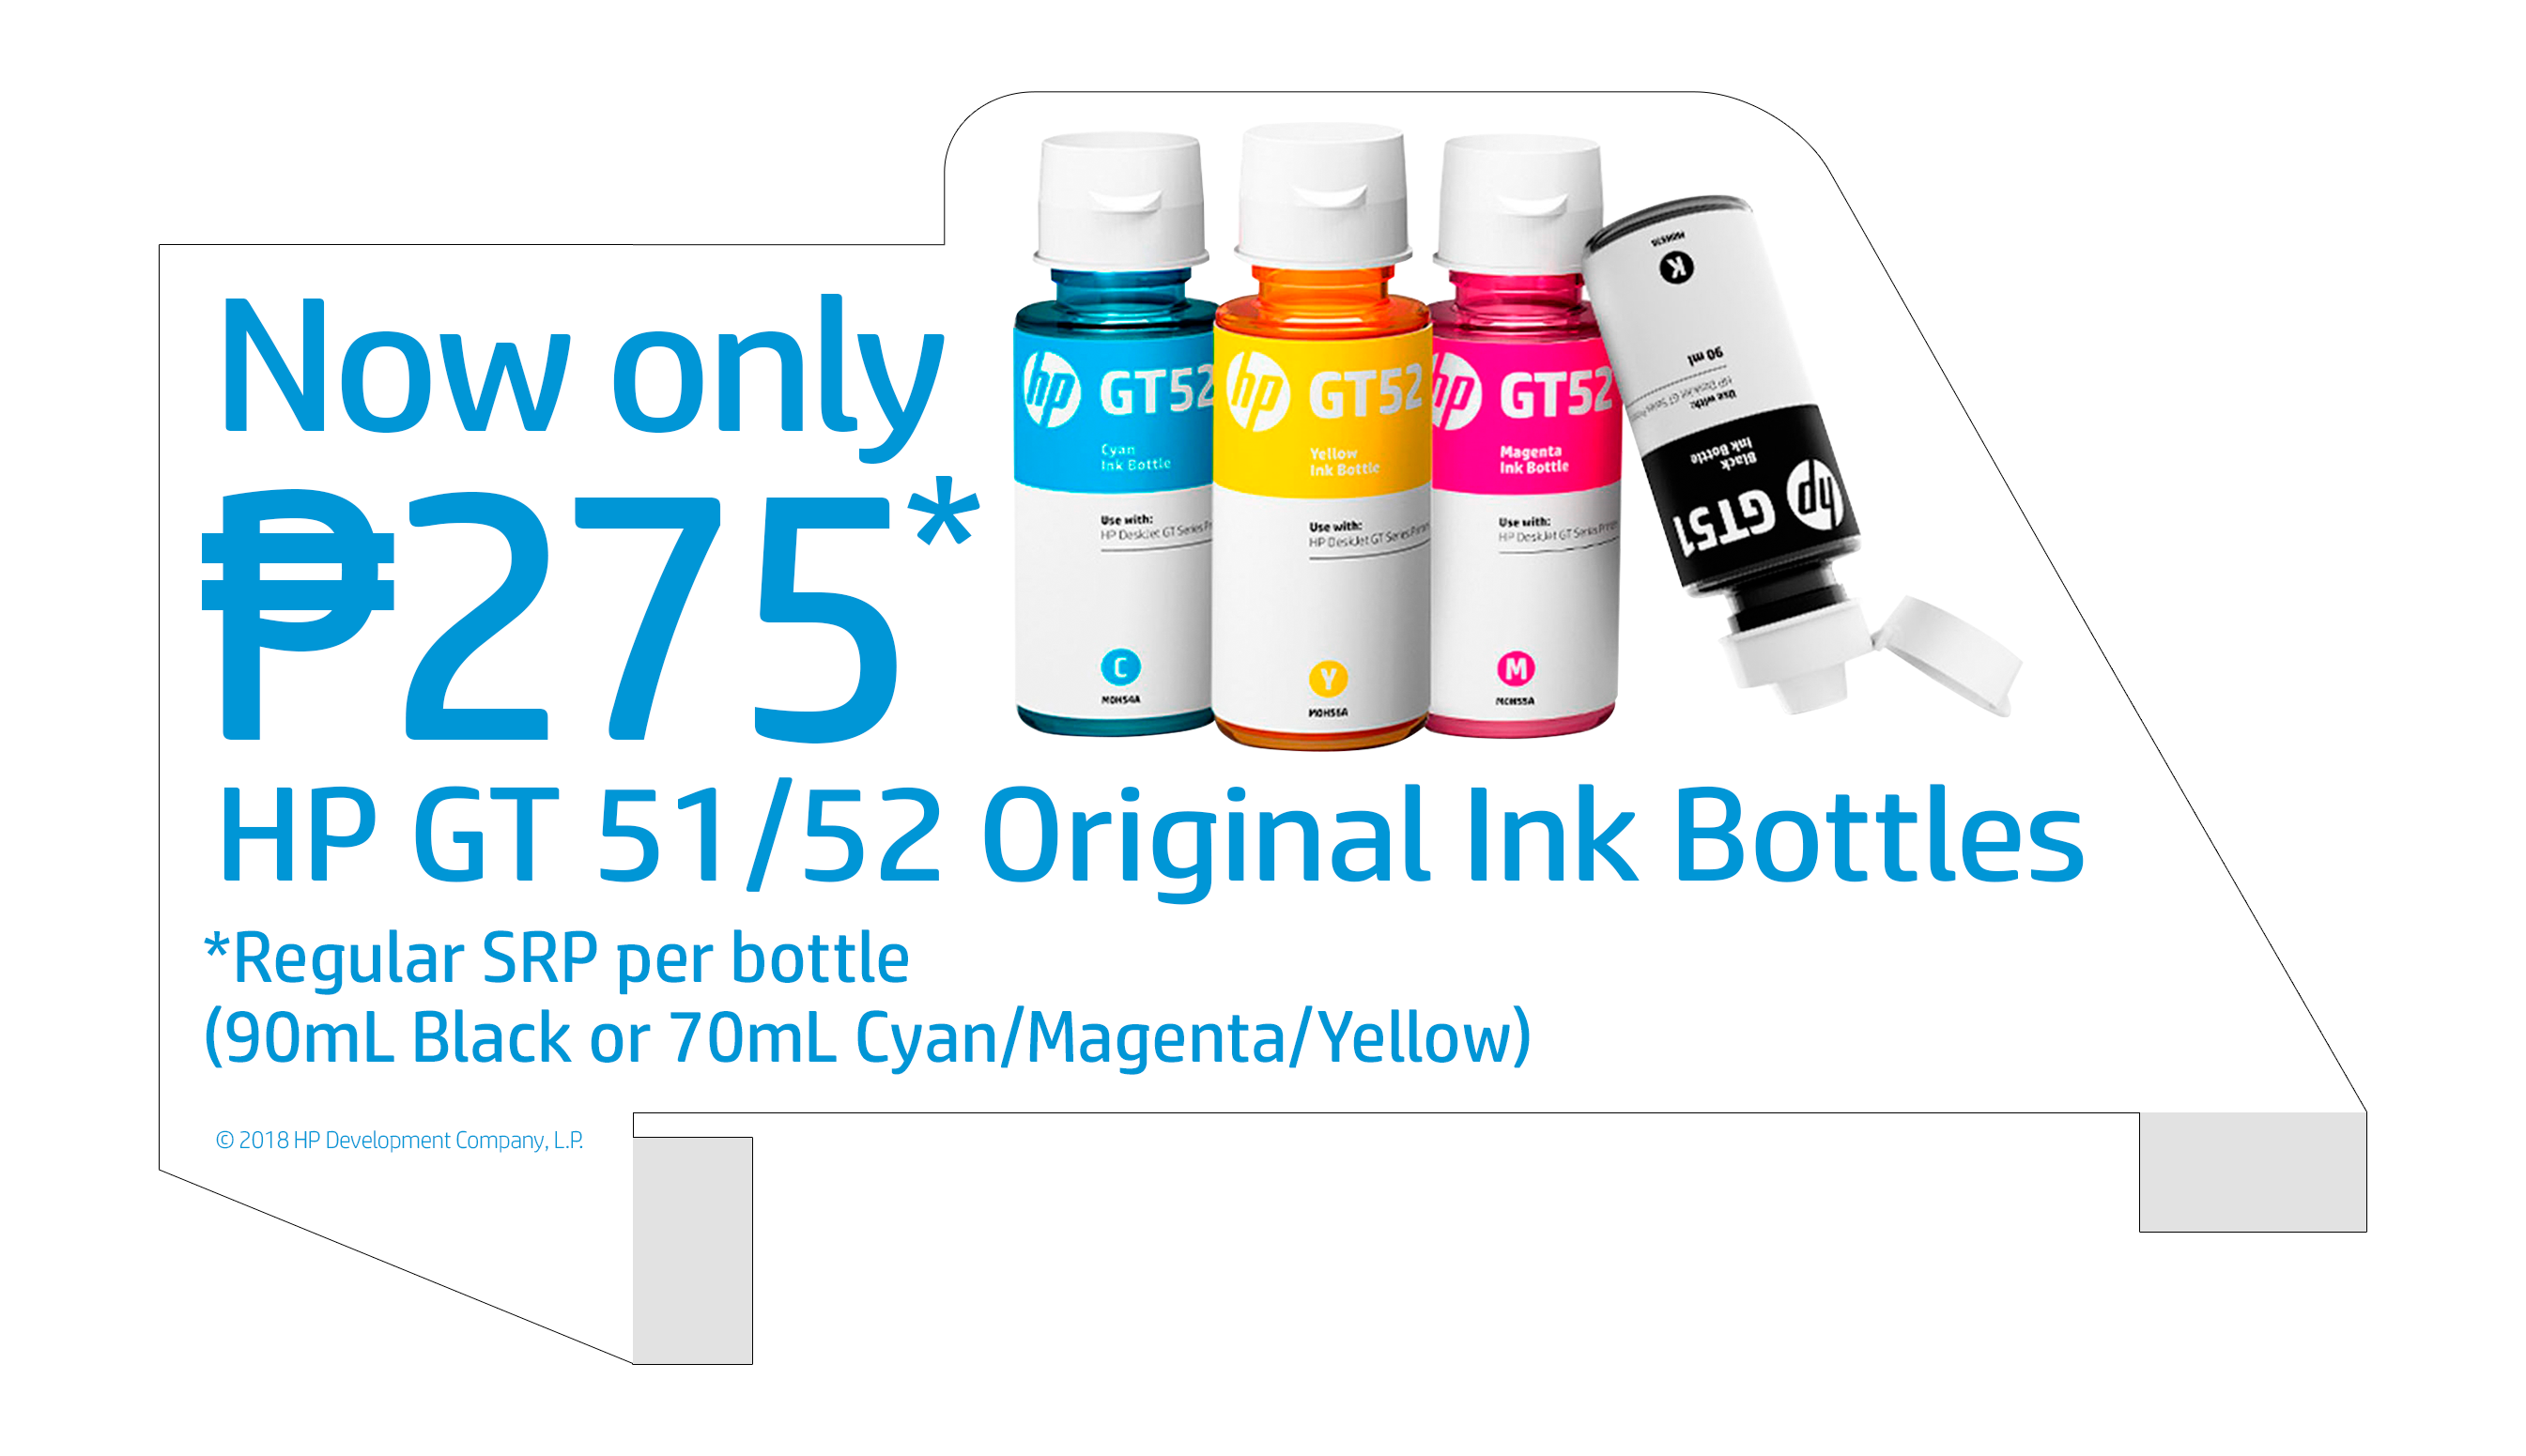 Buy HP GT51/52 Original Ink Bottles for only PhP275